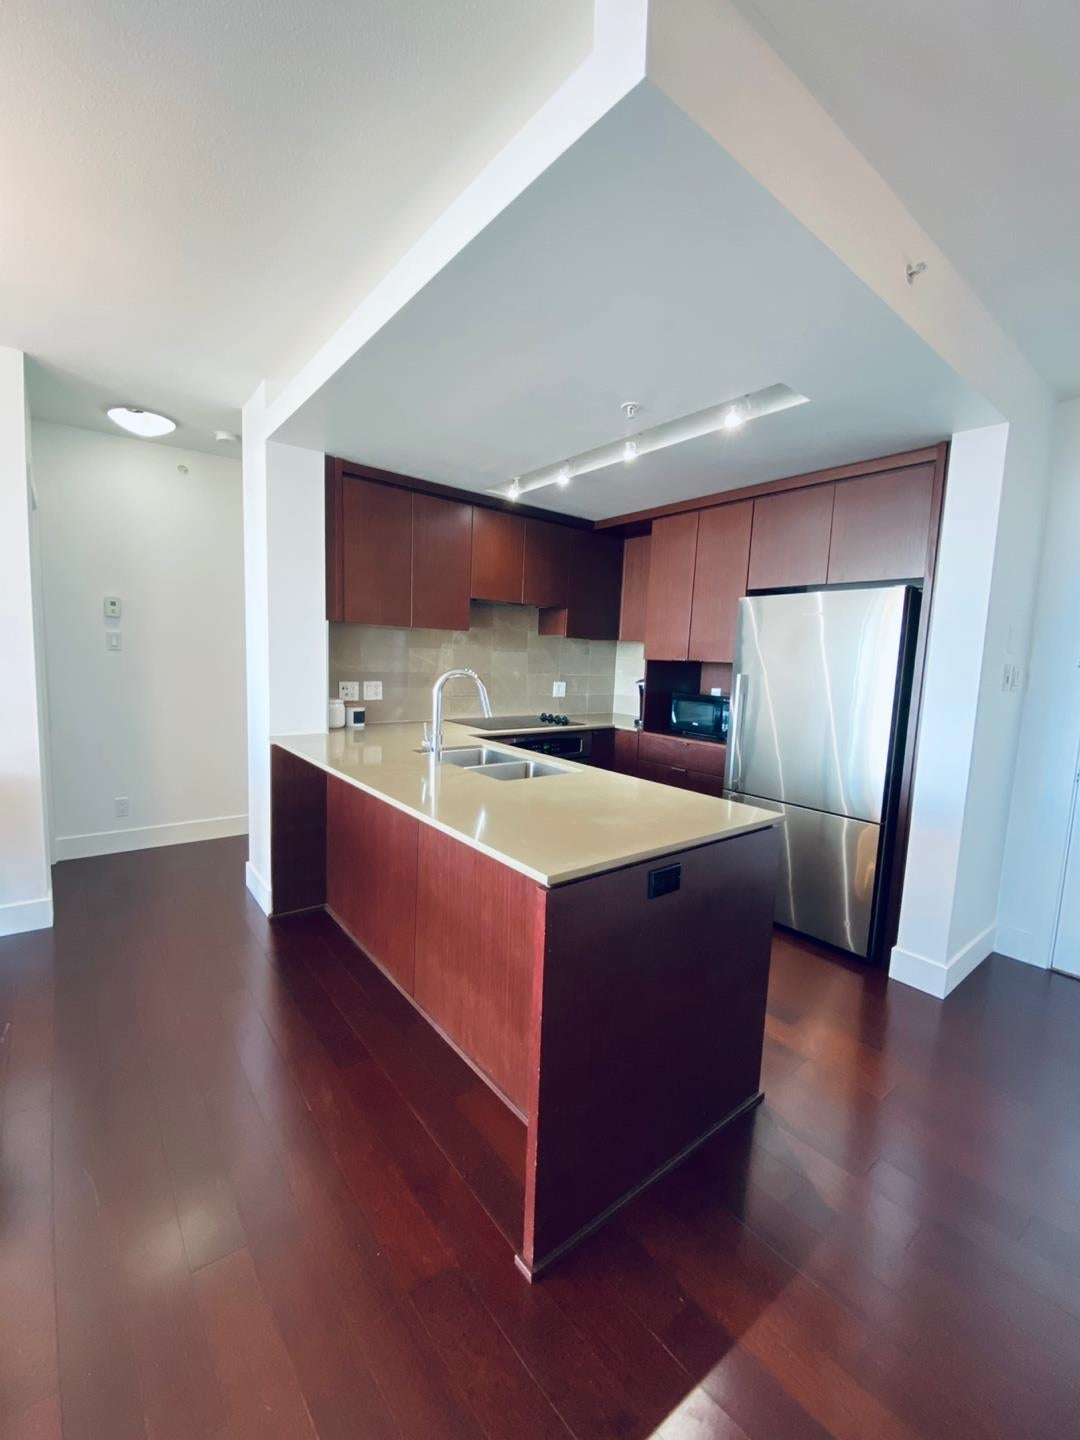 1505 158 W 13TH STREET - Central Lonsdale Apartment/Condo for sale, 2 Bedrooms (R2616868) - #8